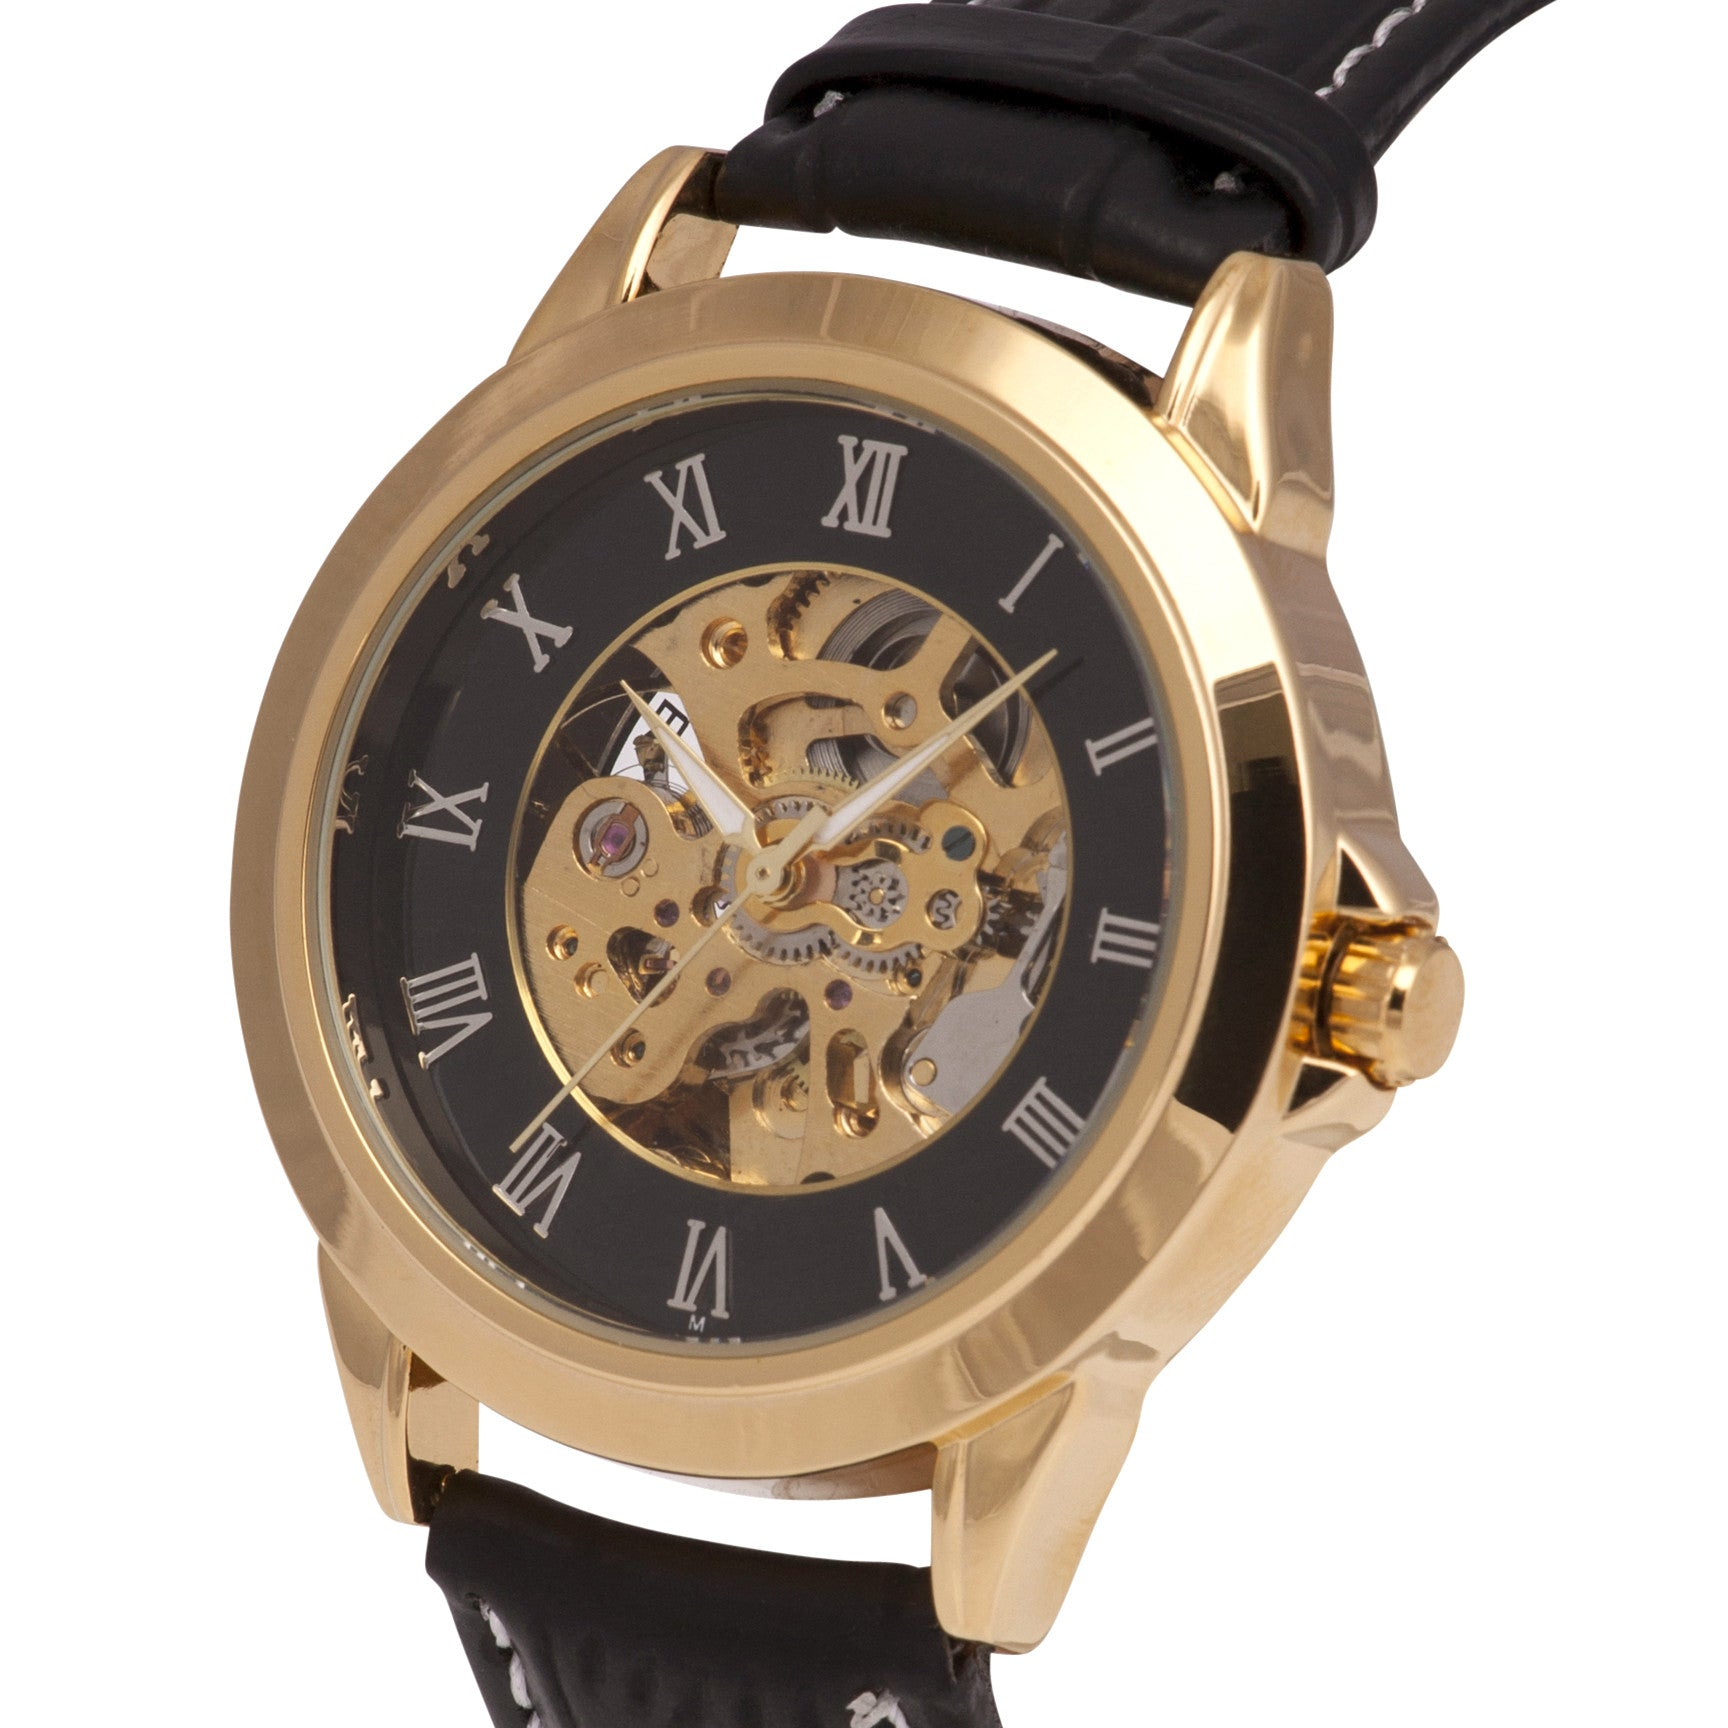 Belgravia Skeleton Watch - Sterling Timepieces - 2